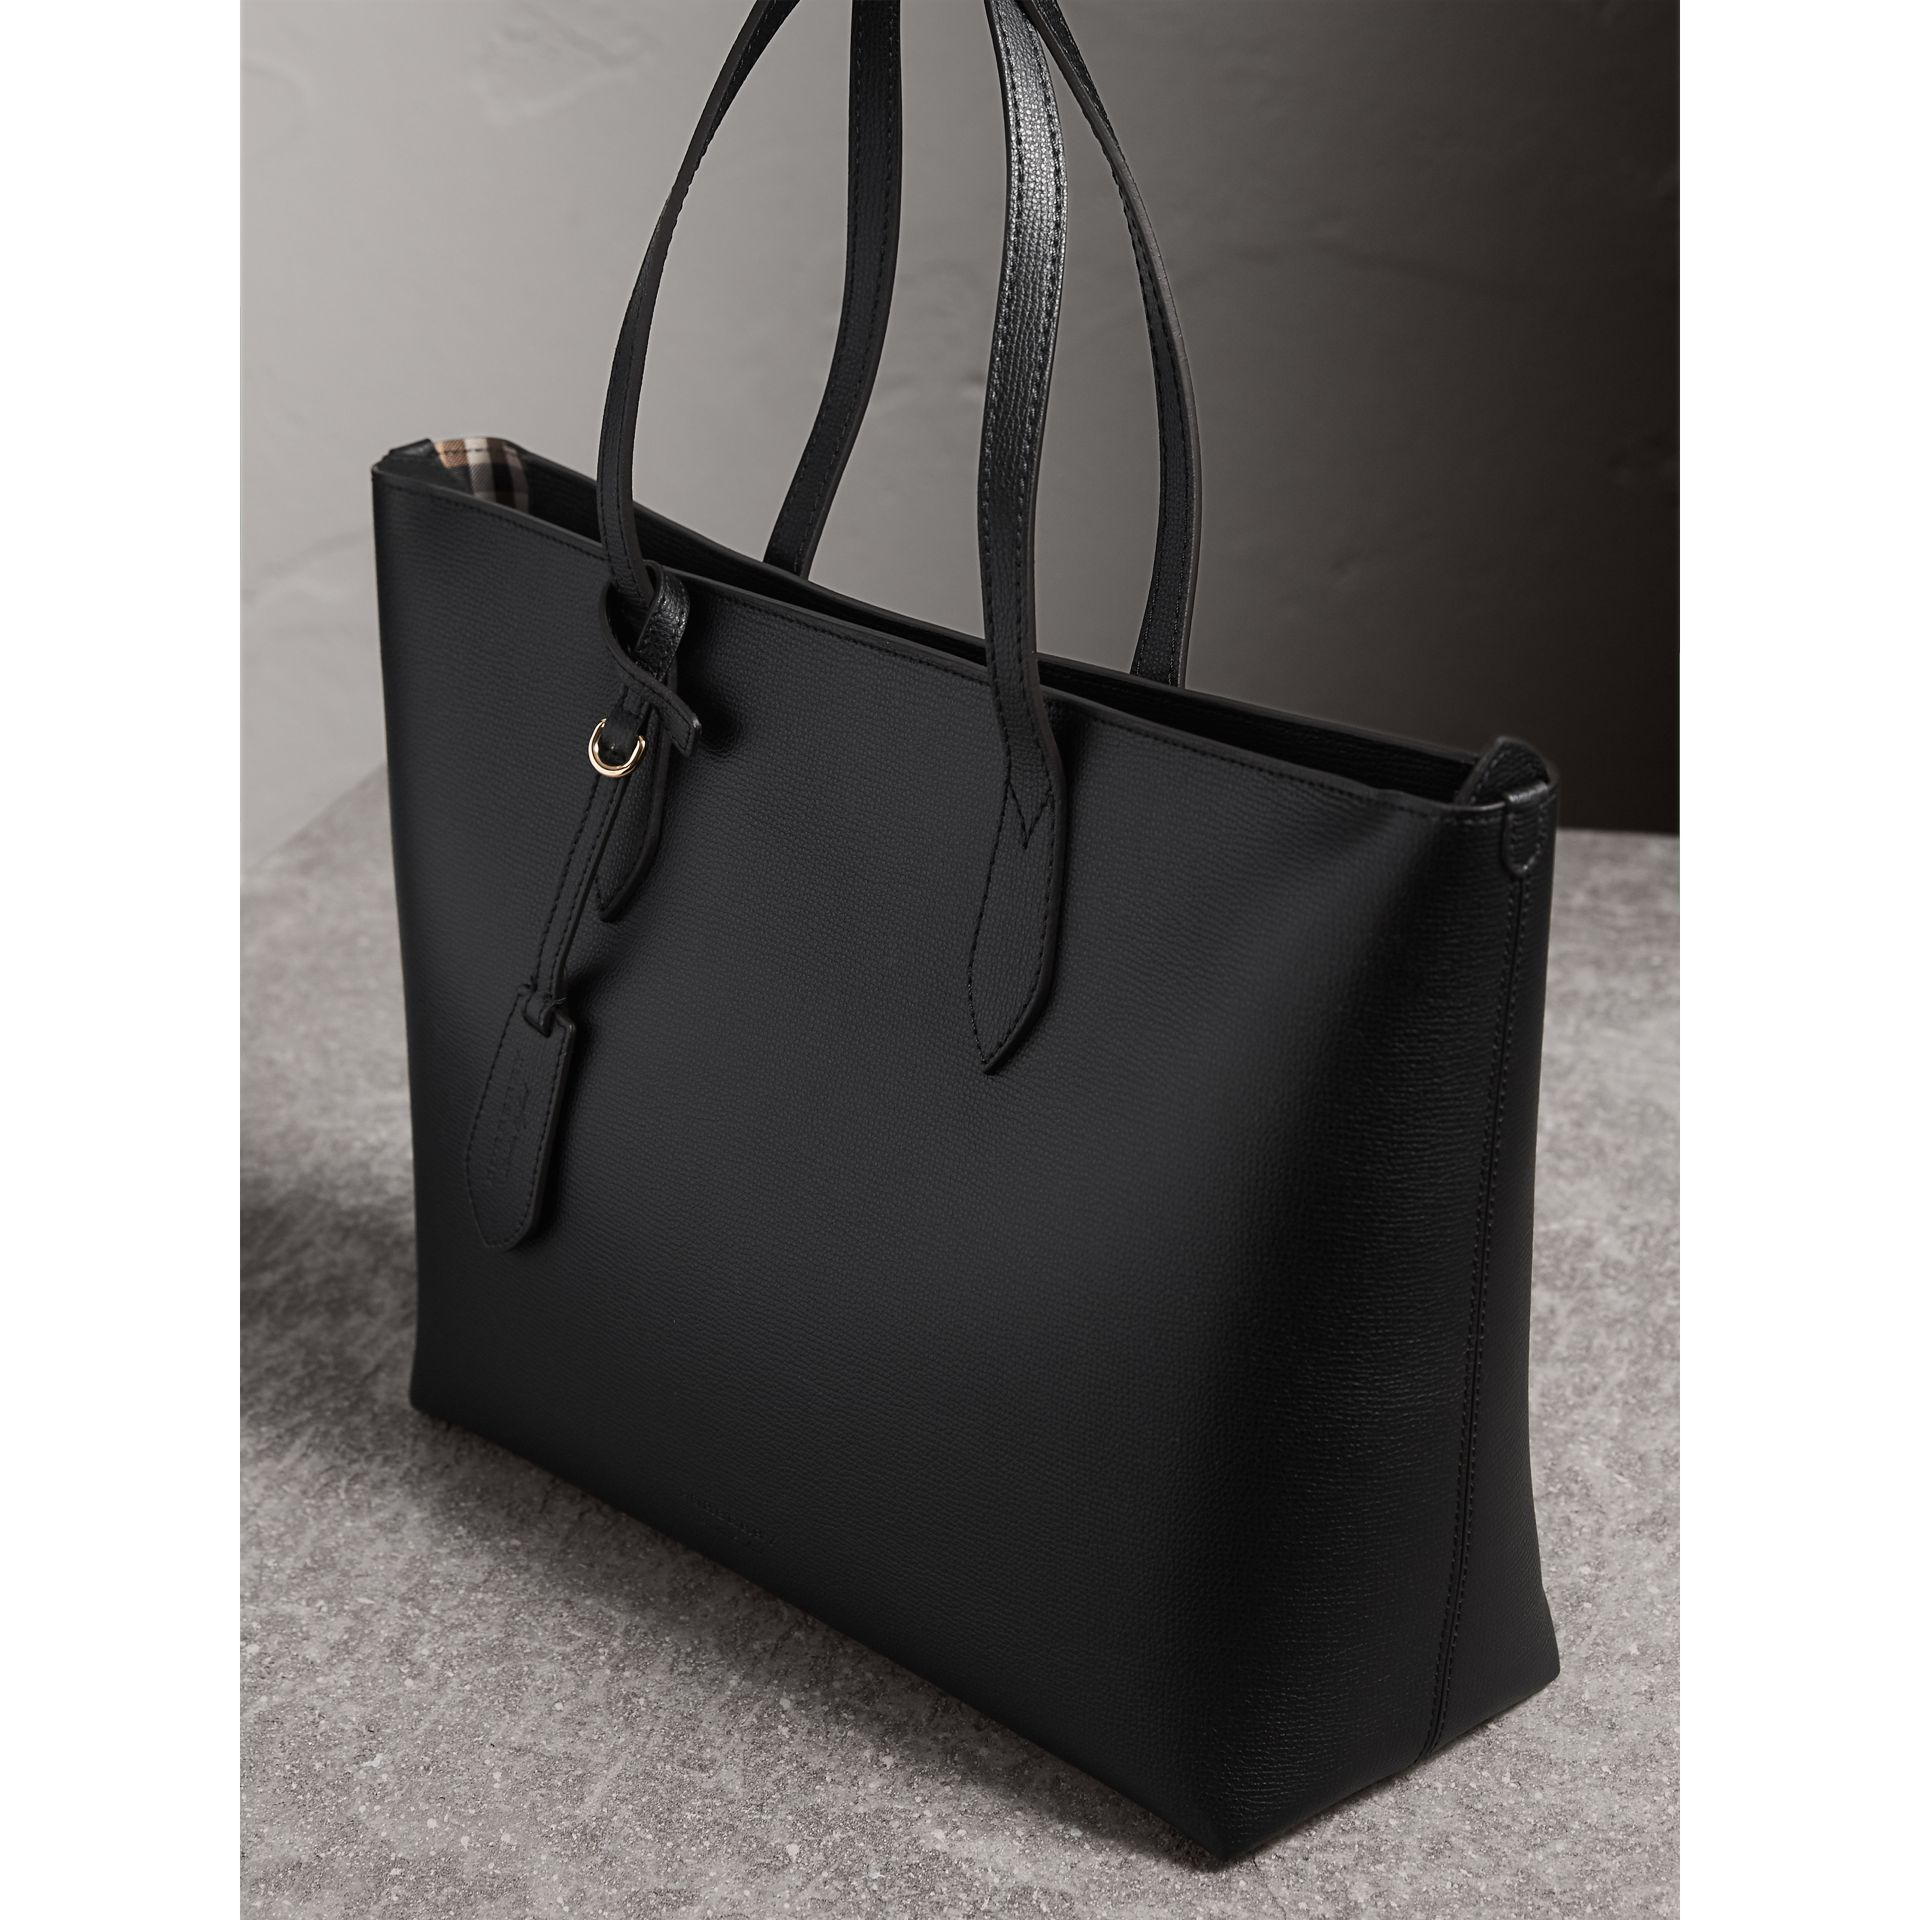 Medium Coated Leather Tote in Black - Women | Burberry United Kingdom - gallery image 5